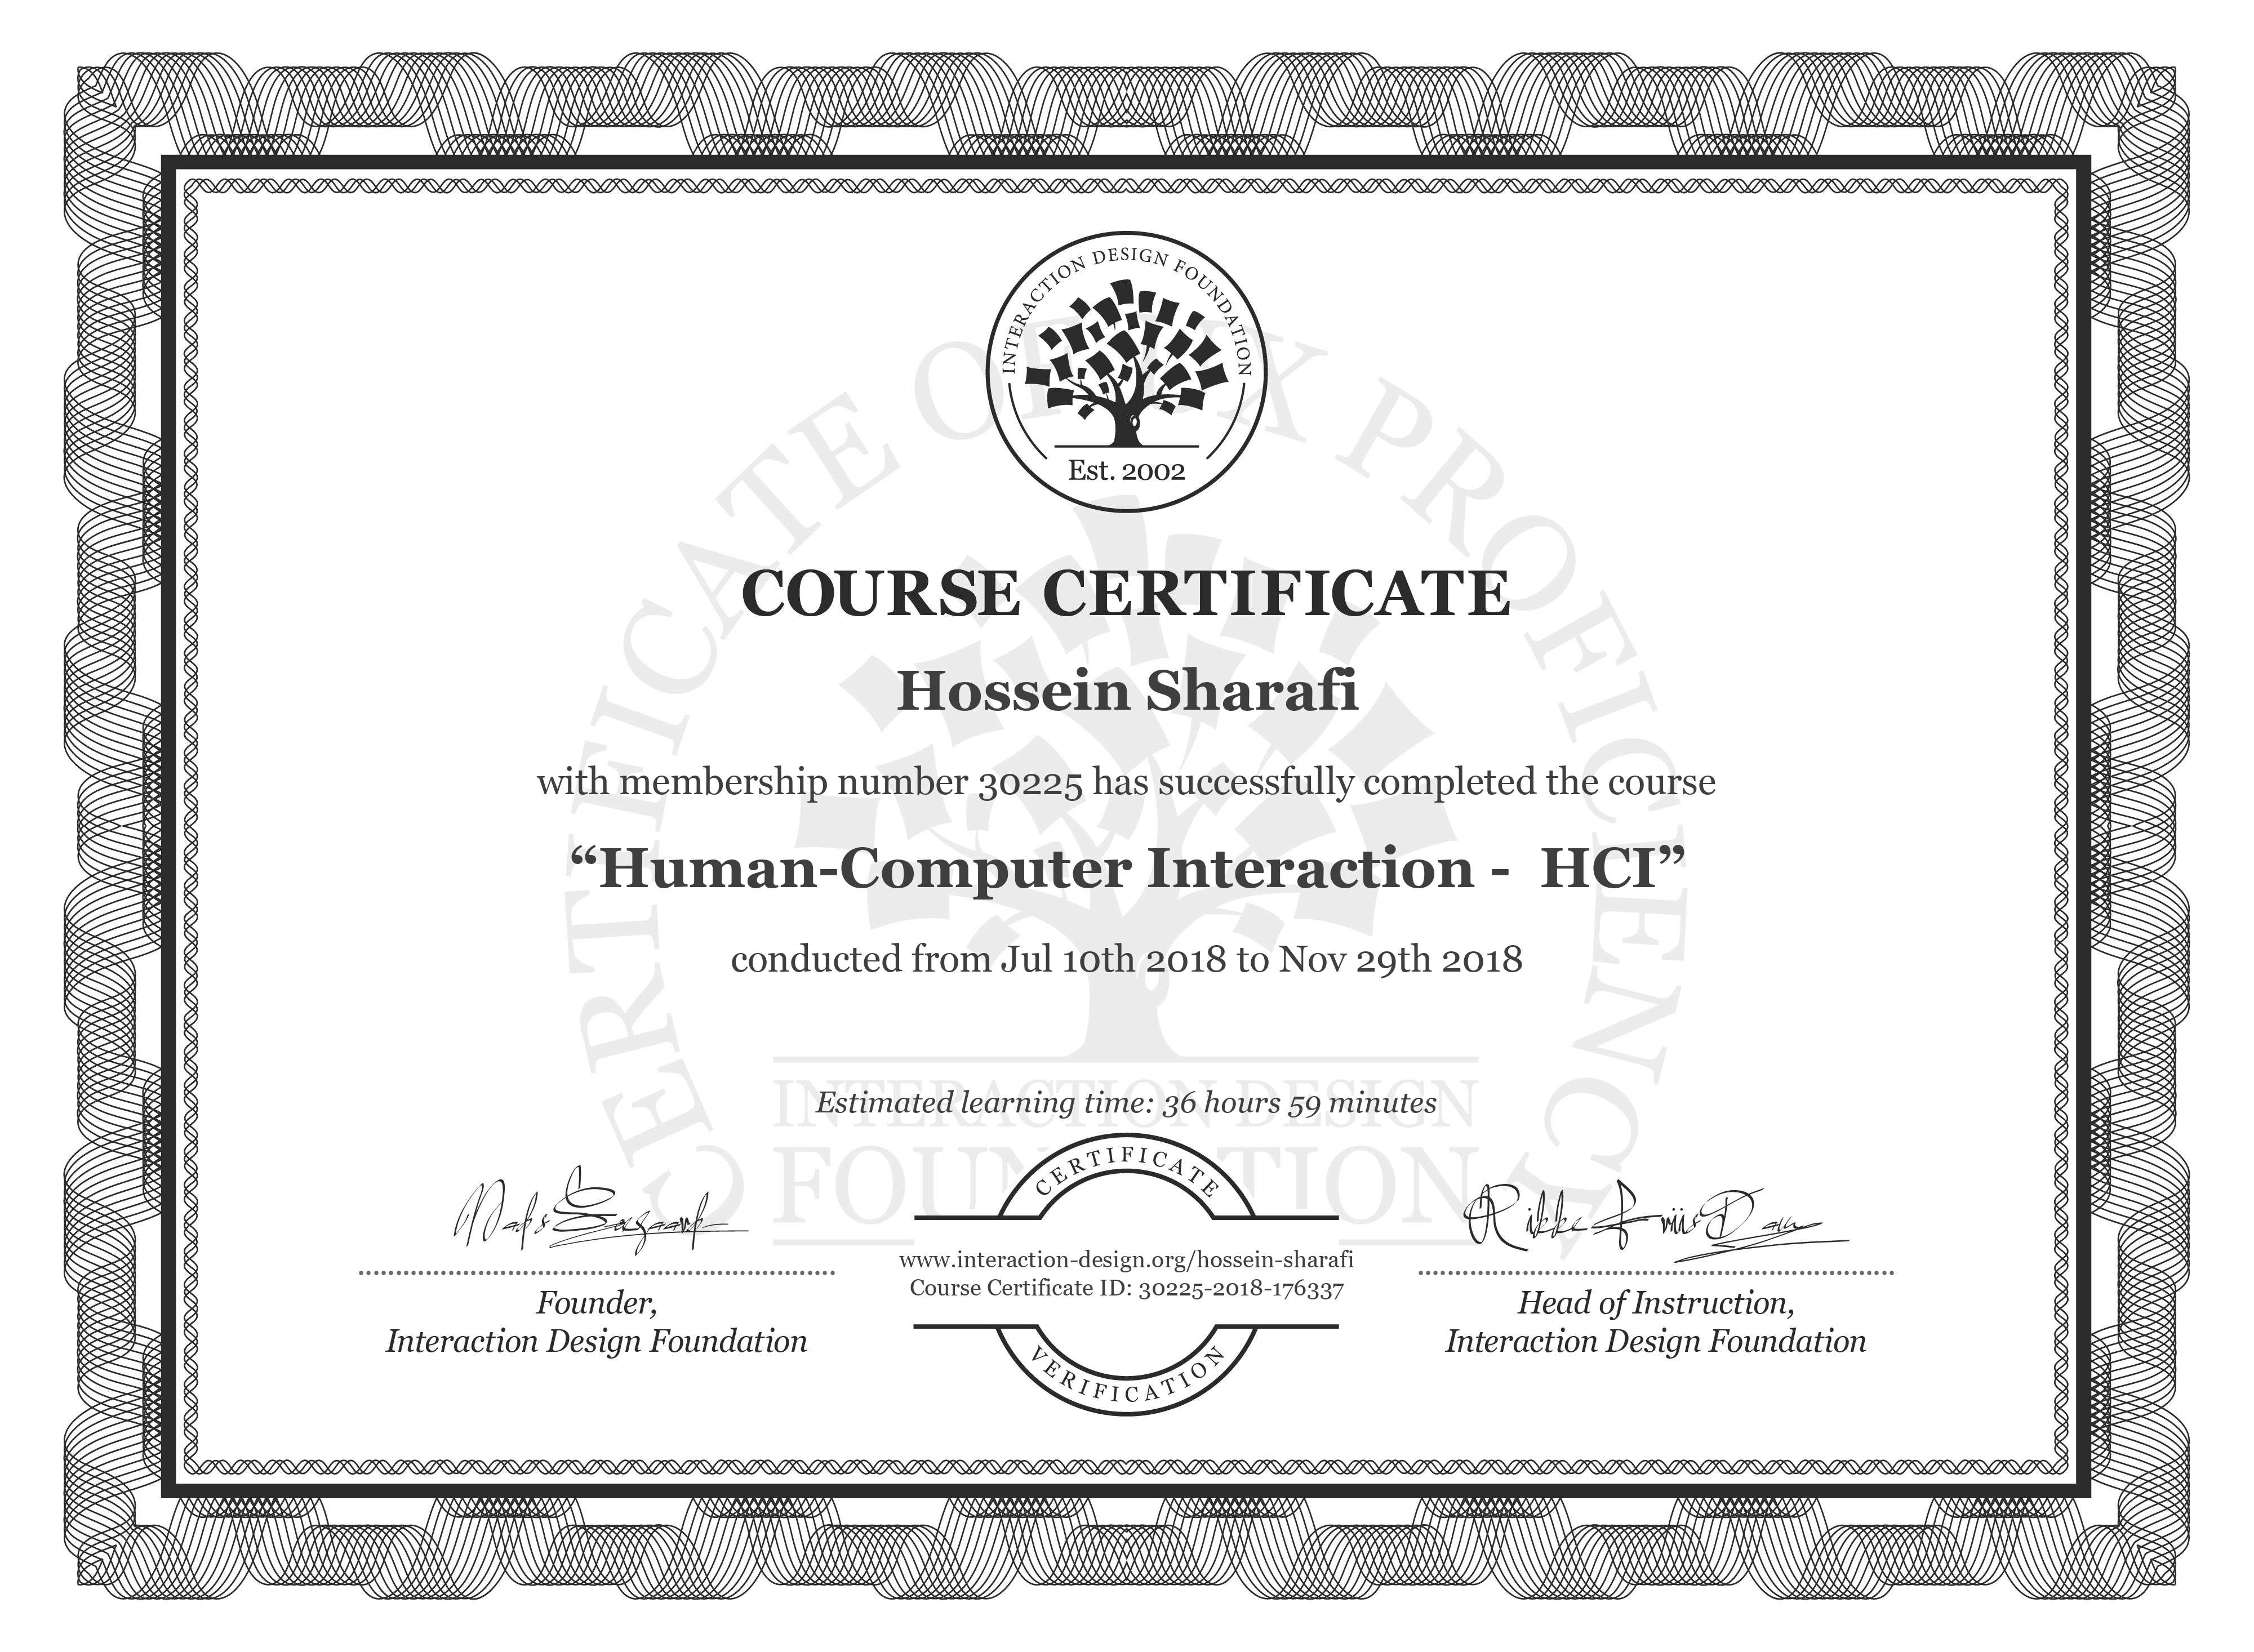 Hossein Sharafi's Course Certificate: Human-Computer Interaction -  HCI